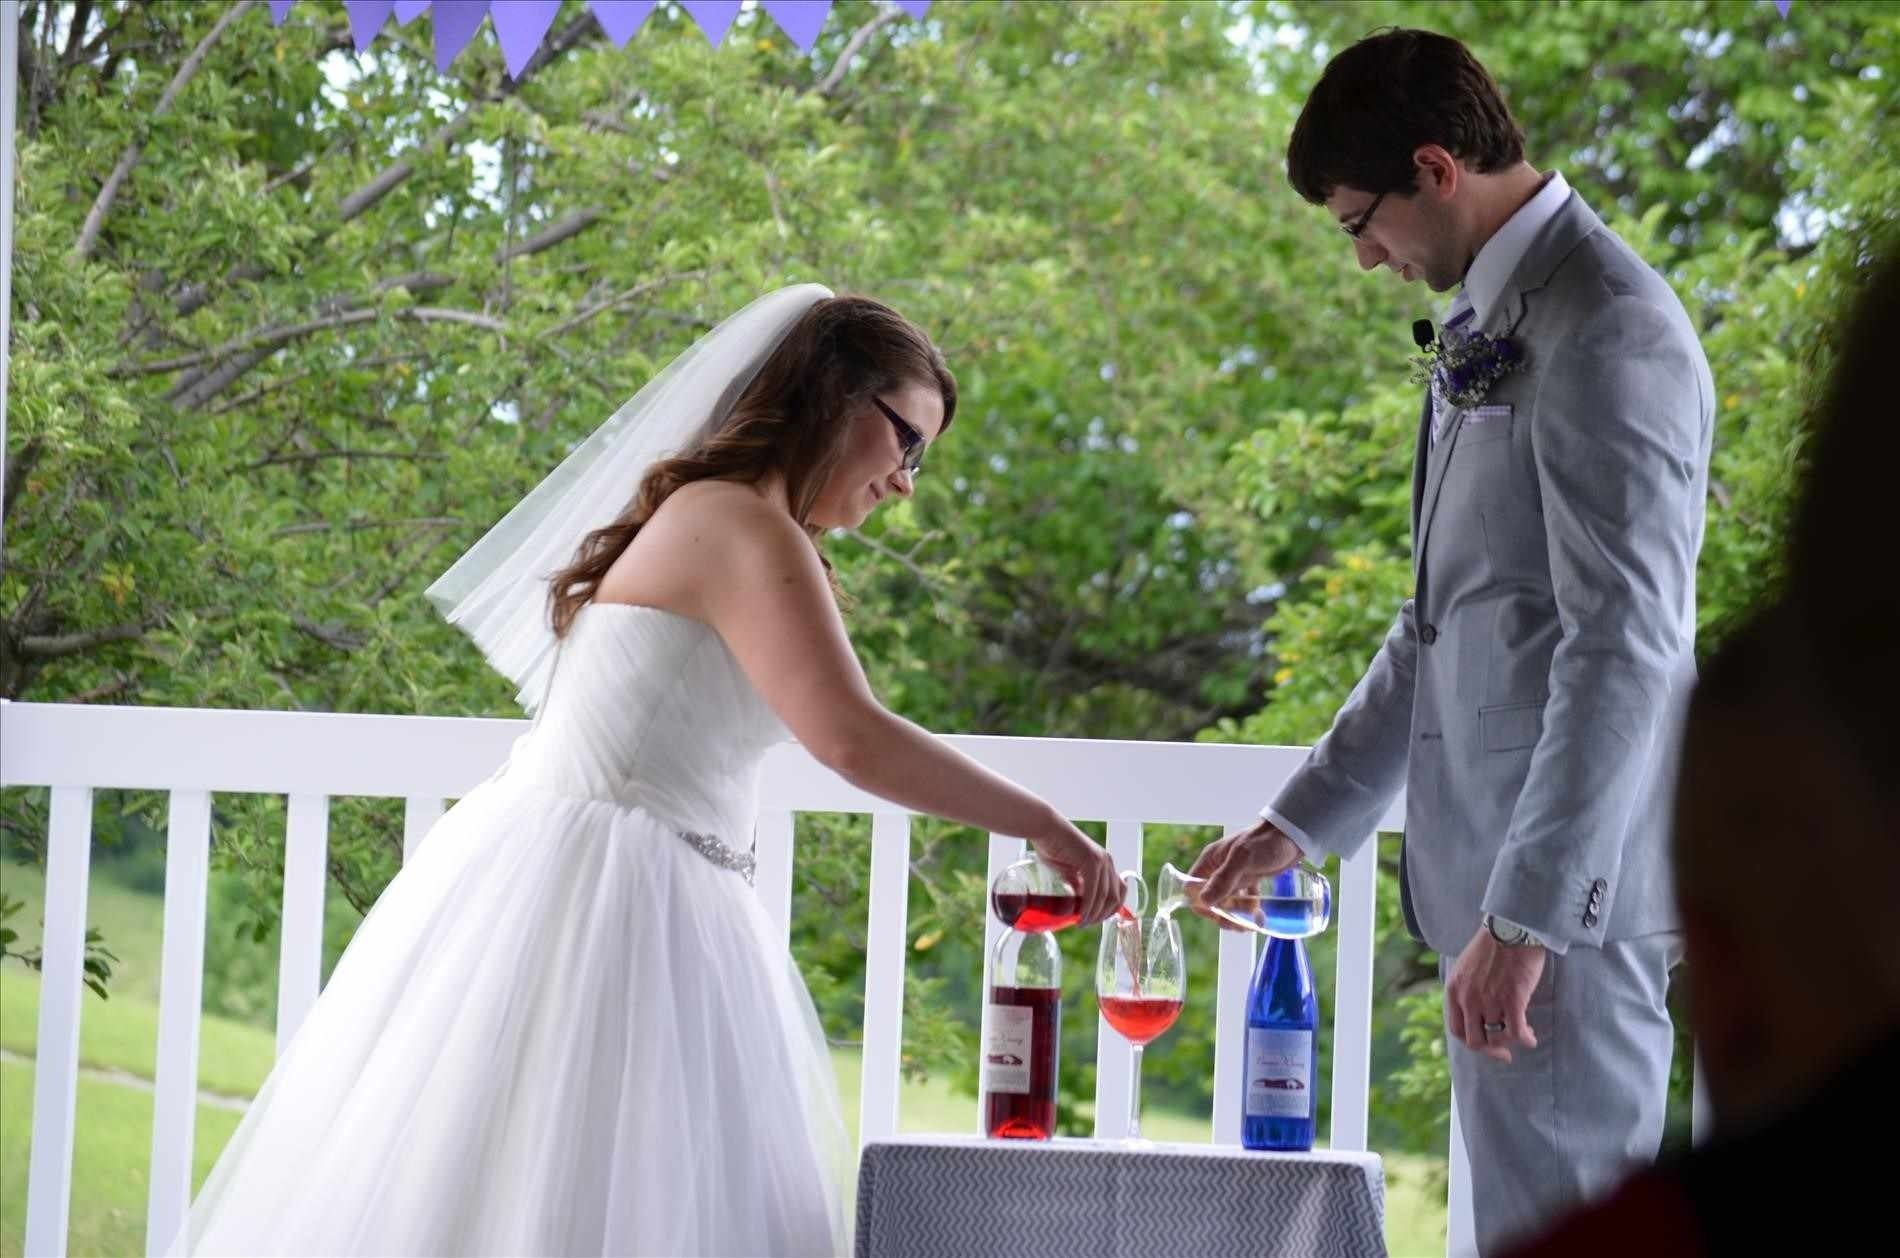 10 Spectacular Ideas Instead Of Unity Candle wedding ceremony ideas instead of unity candle ceremony ideas